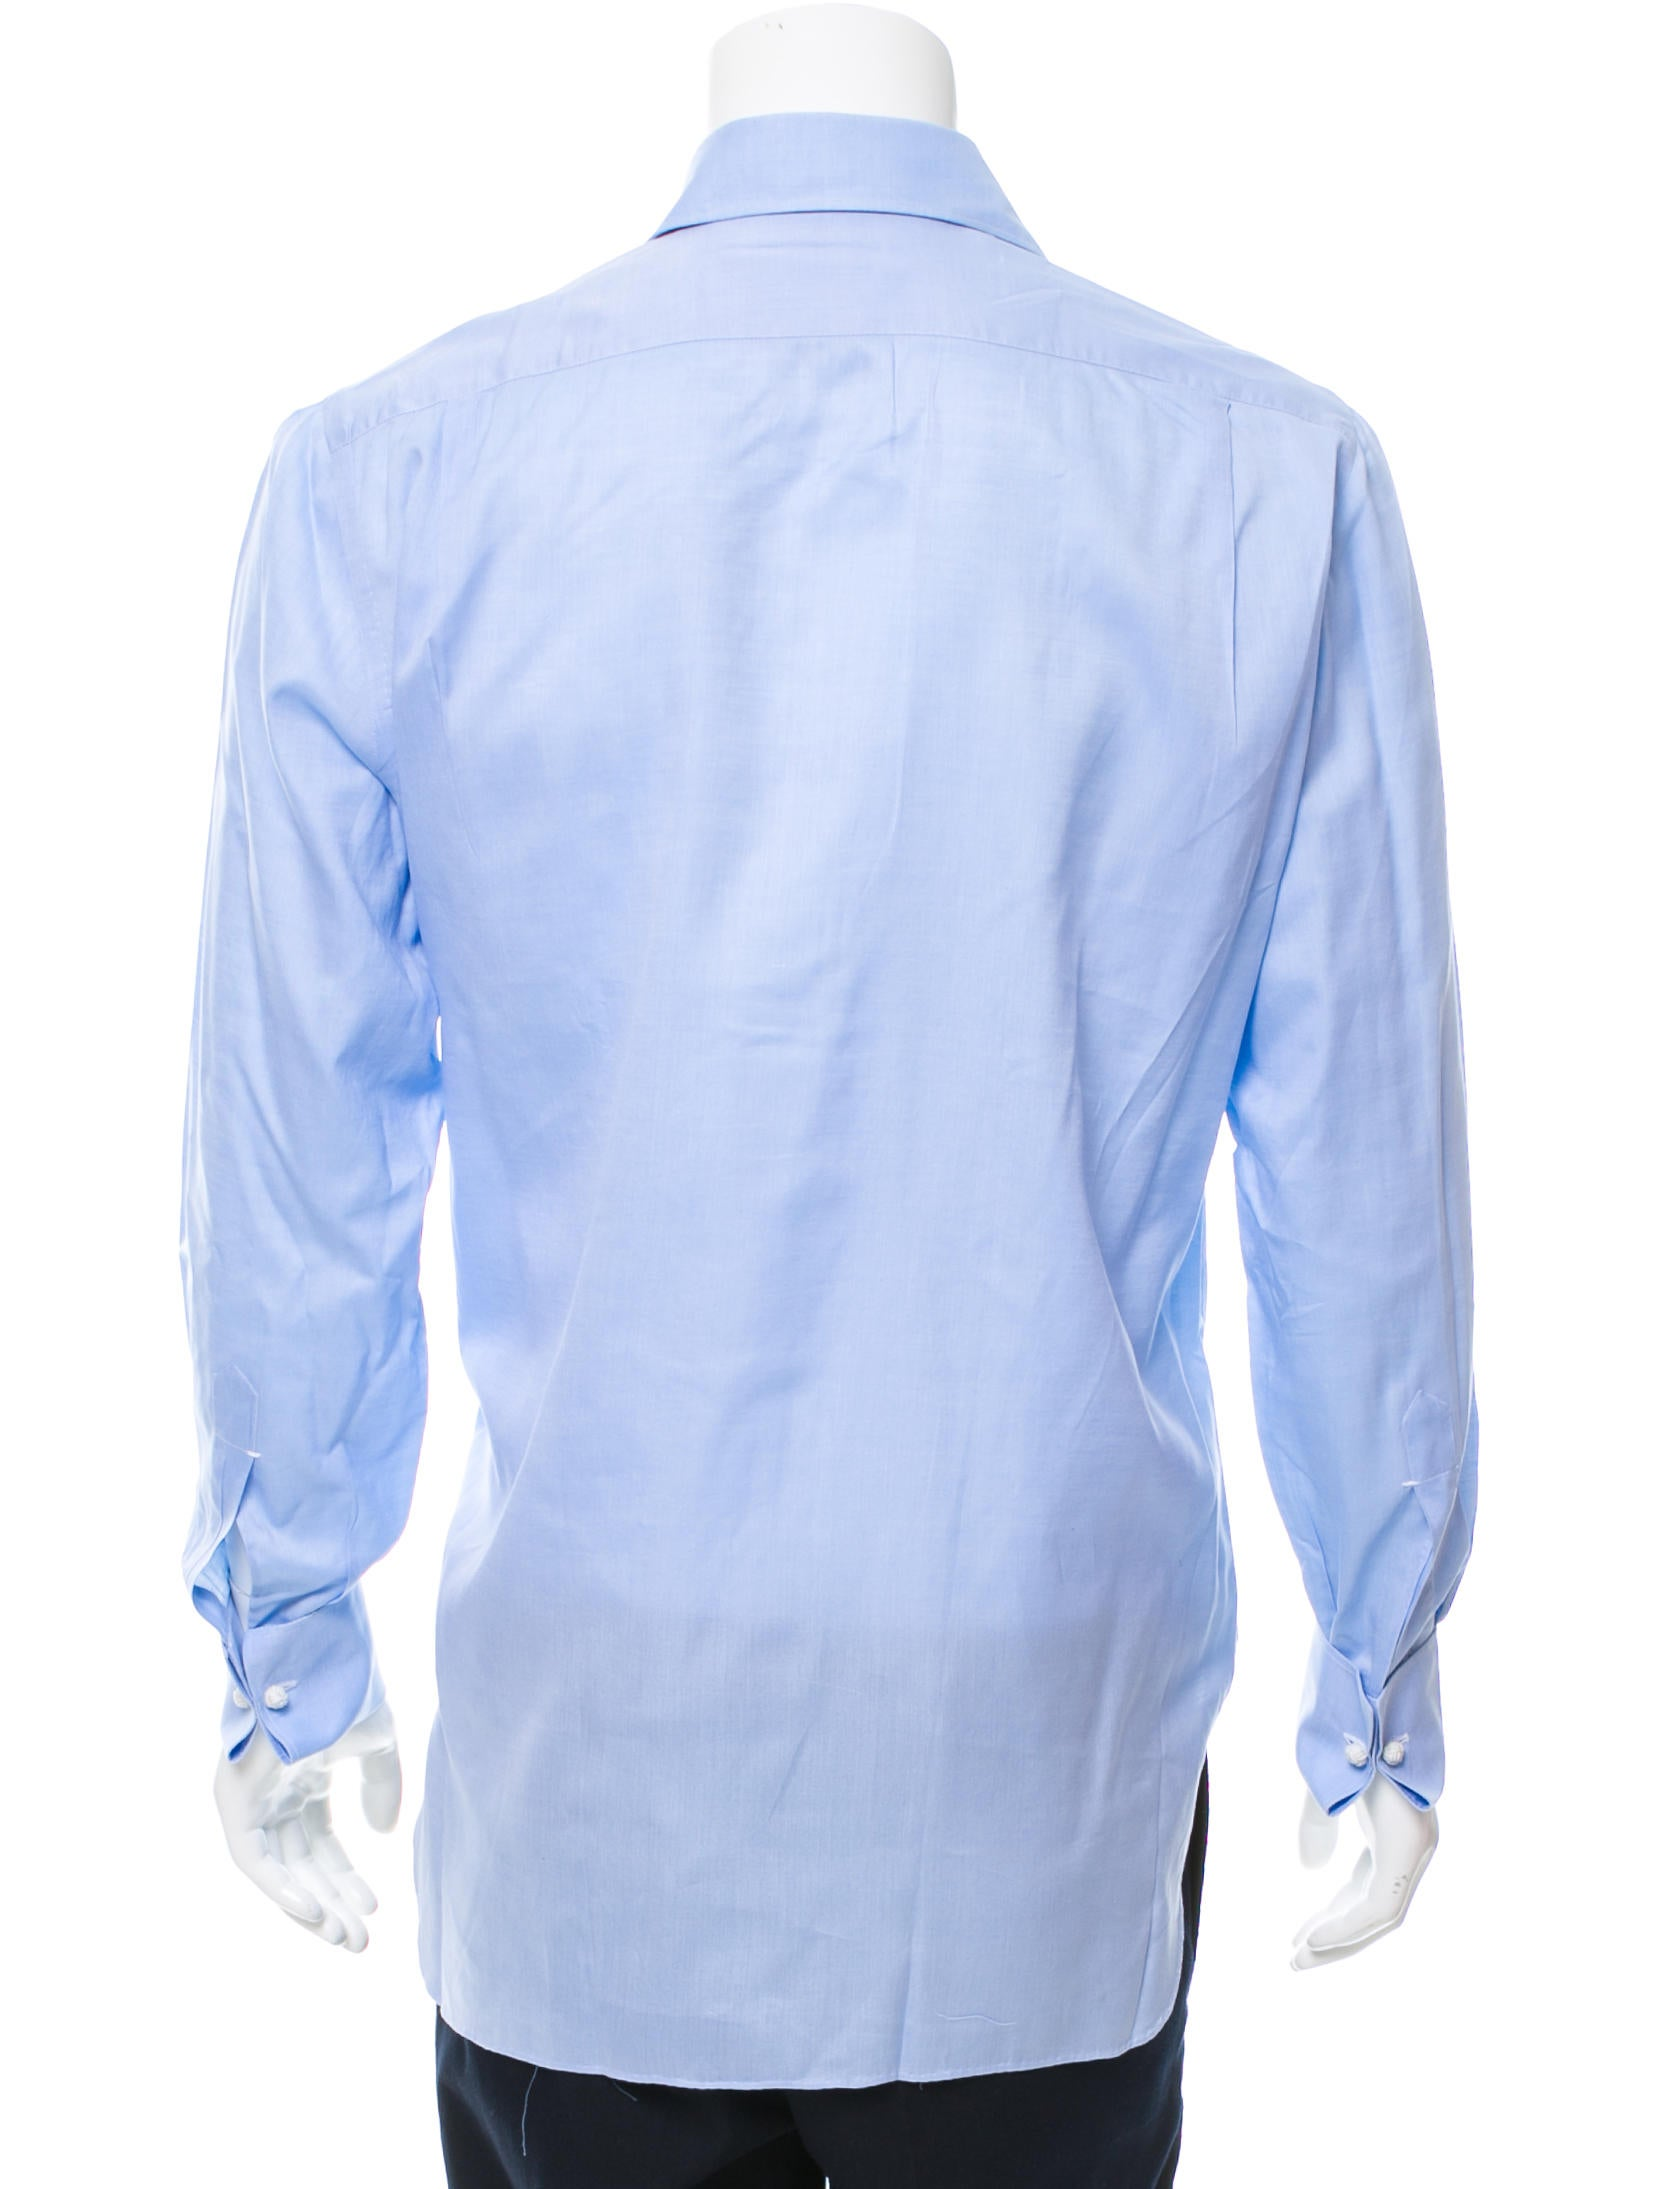 Kiton french cuff button up shirt clothing kit21548 for Pin collar shirt double cuff